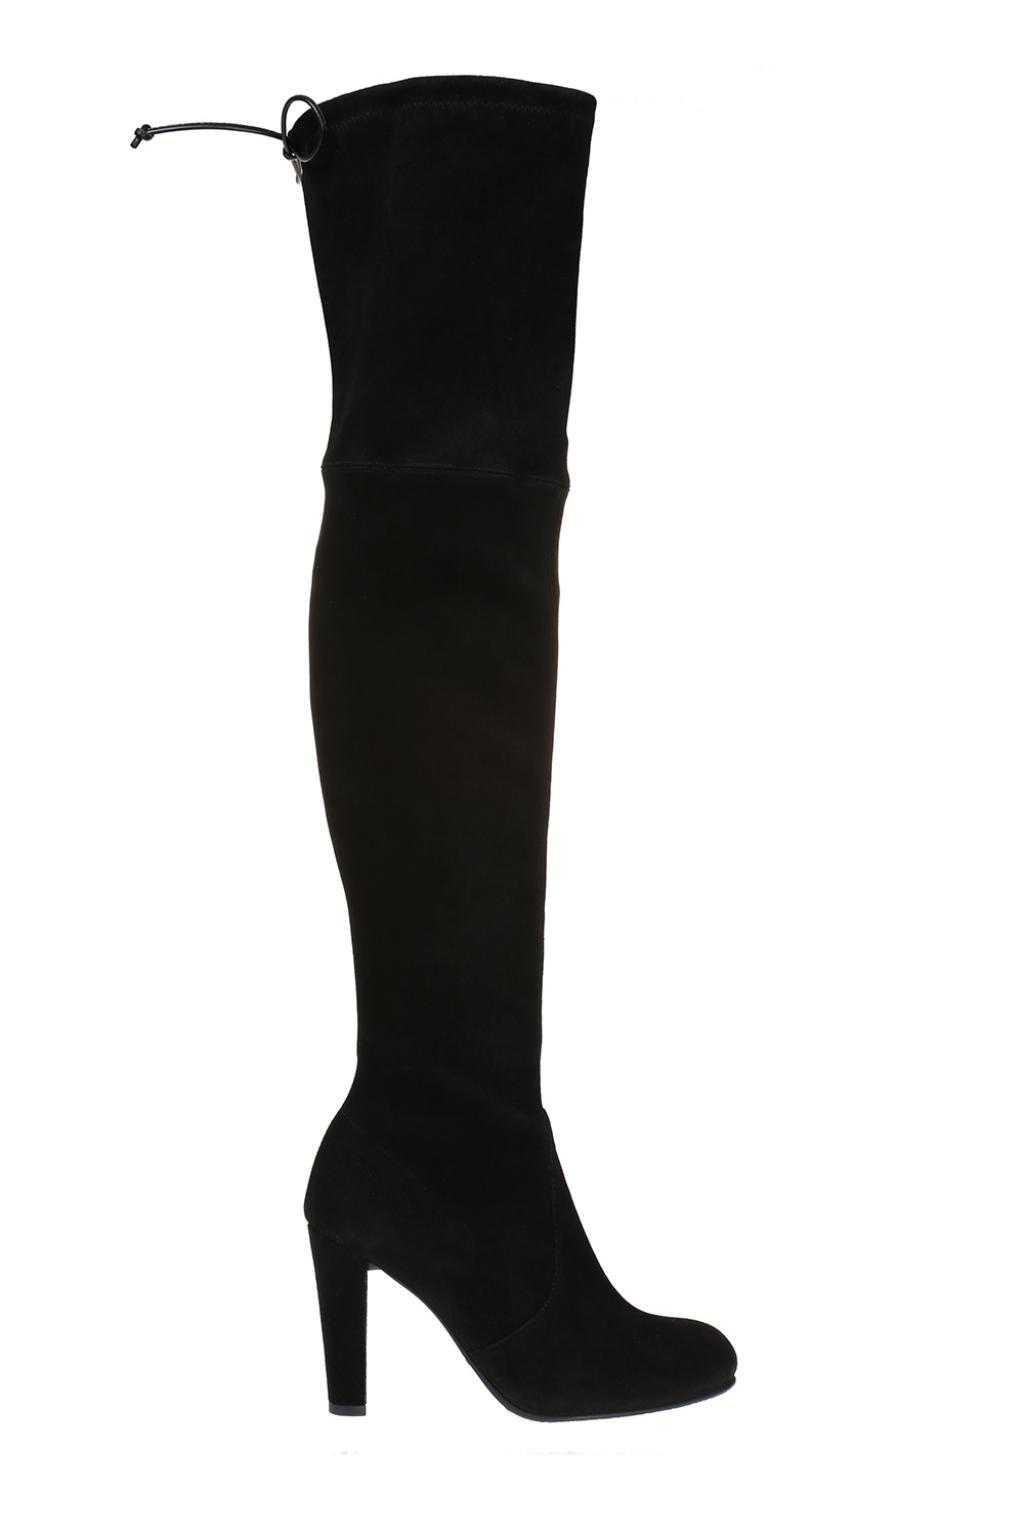 Stuart Weitzman 'Highland' over-the-knee boots